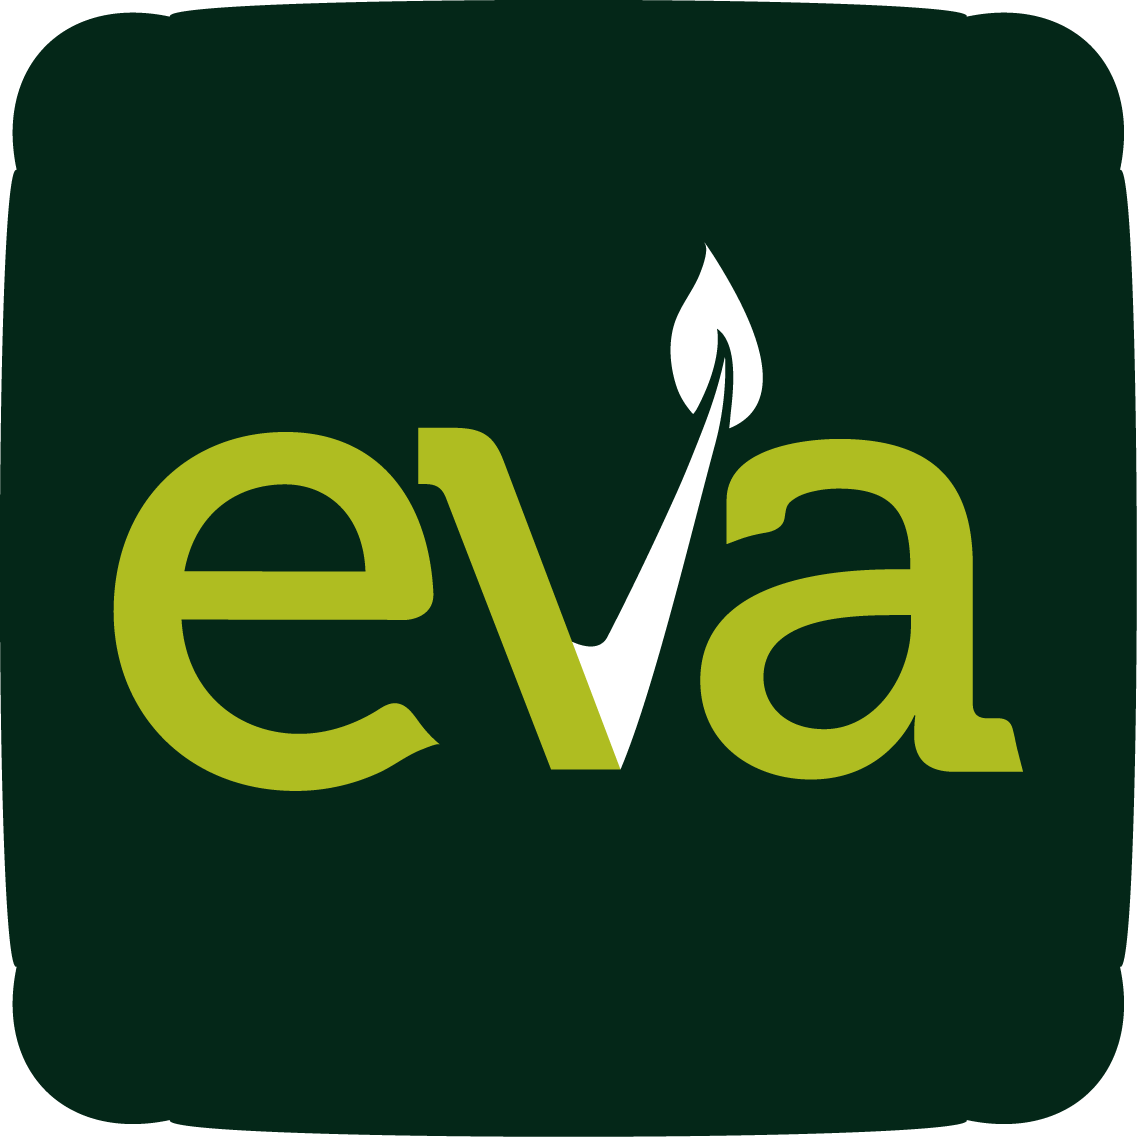 Logo Ethisch Vegetarisch Alternatief (EVA)